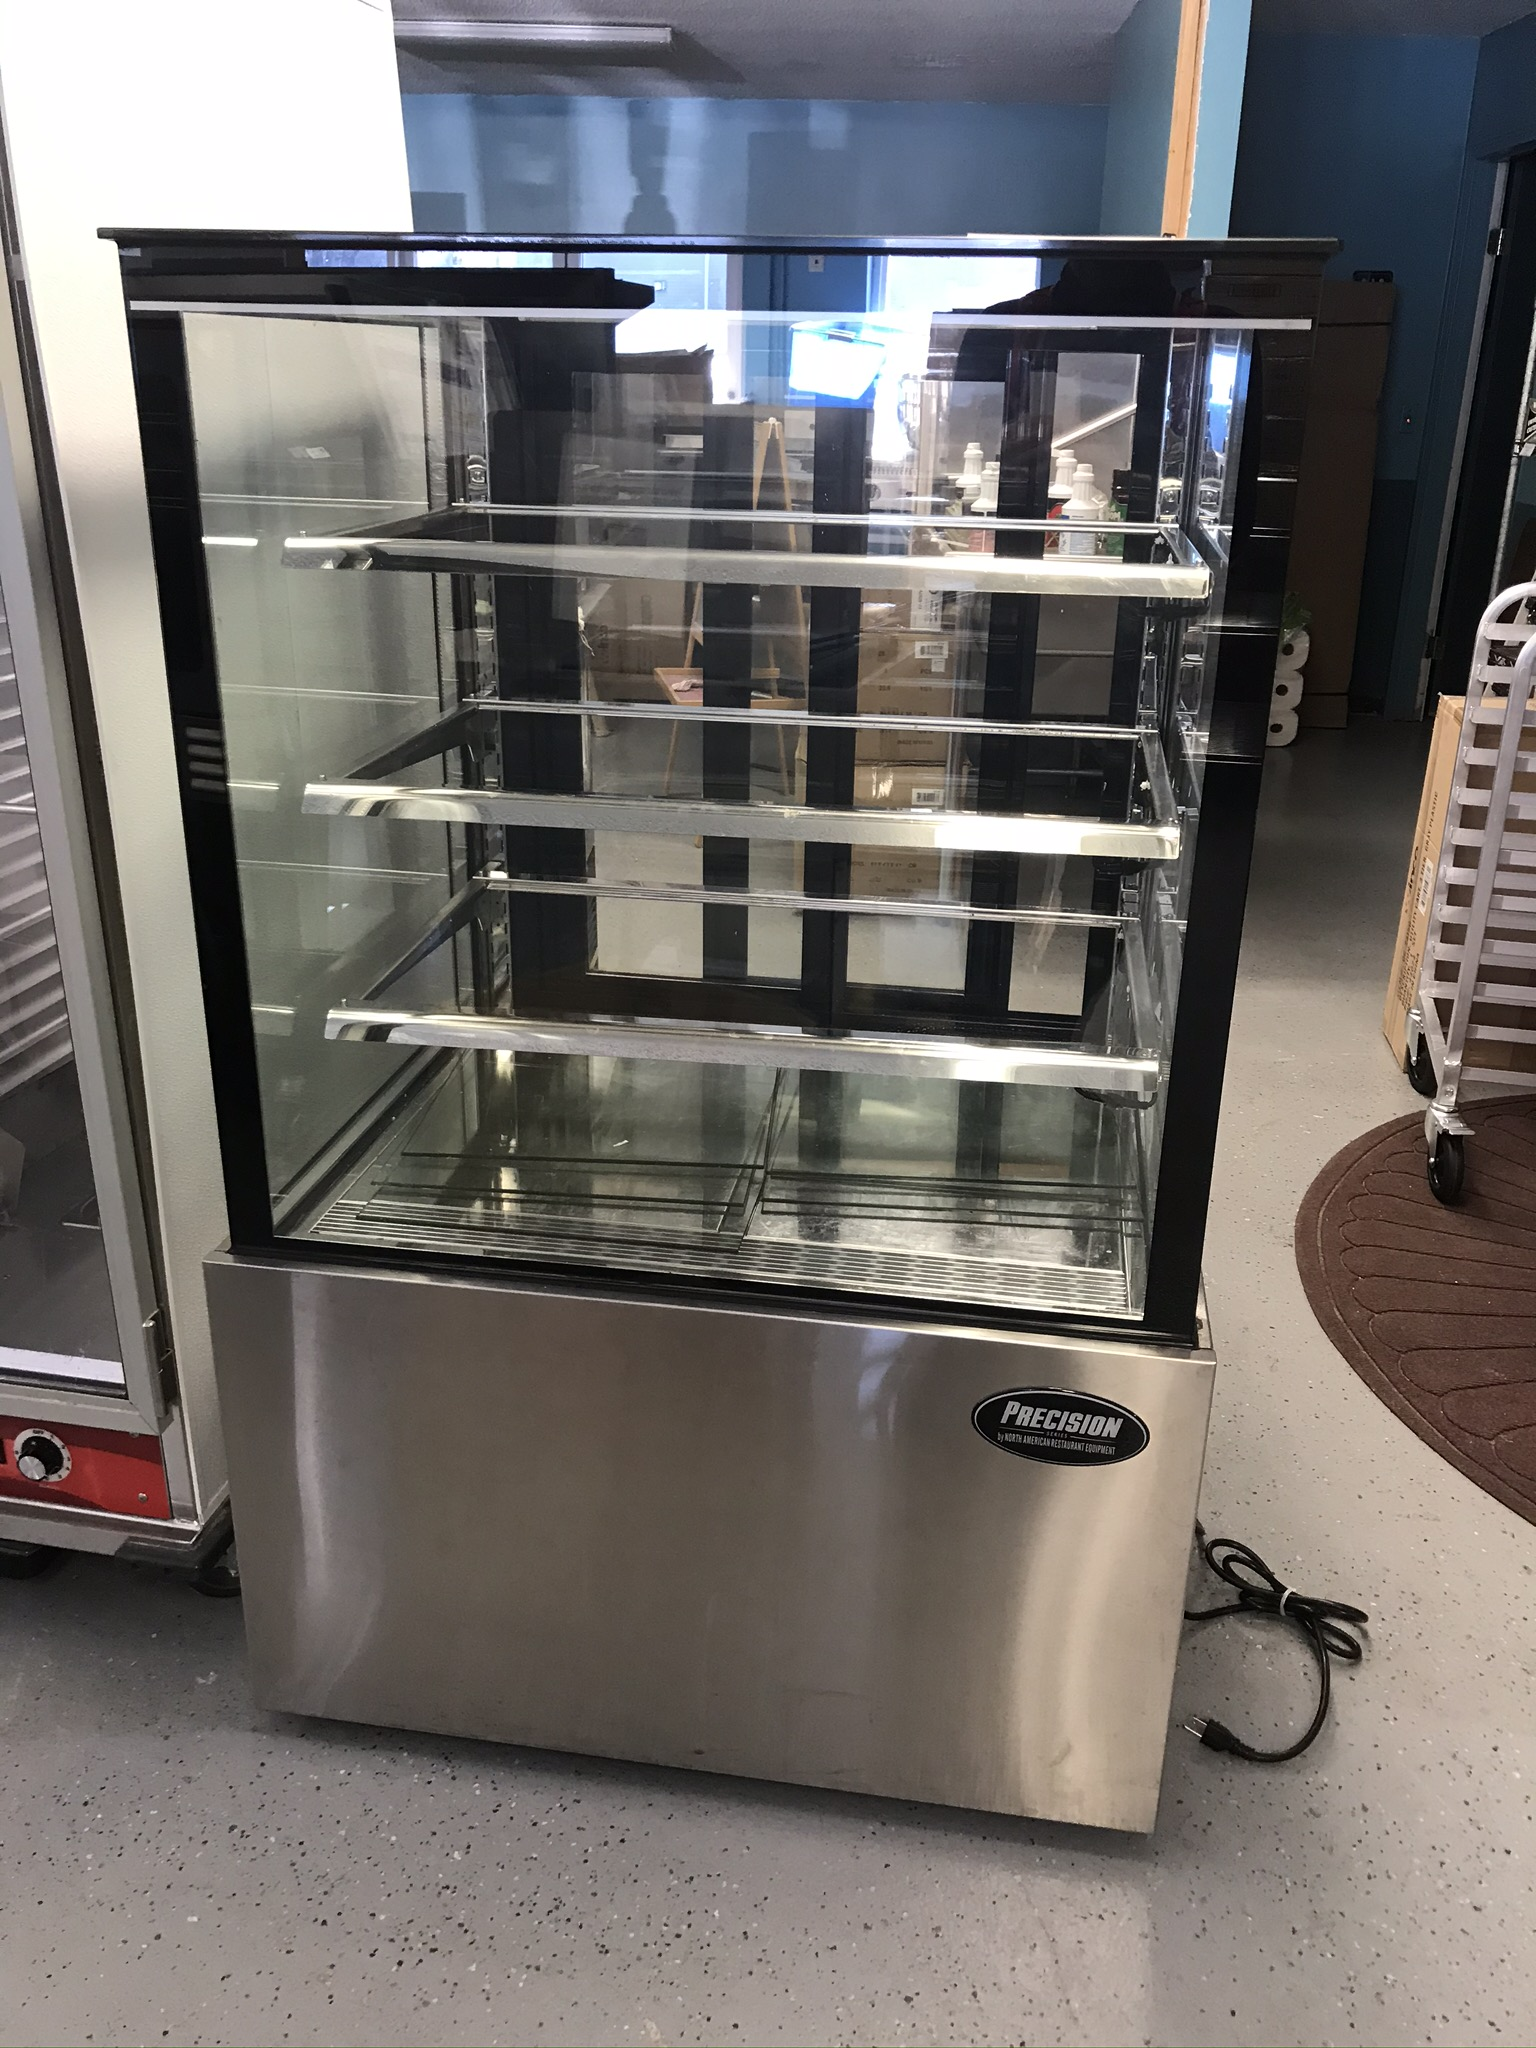 Refrigerated Display Case (Bakery)